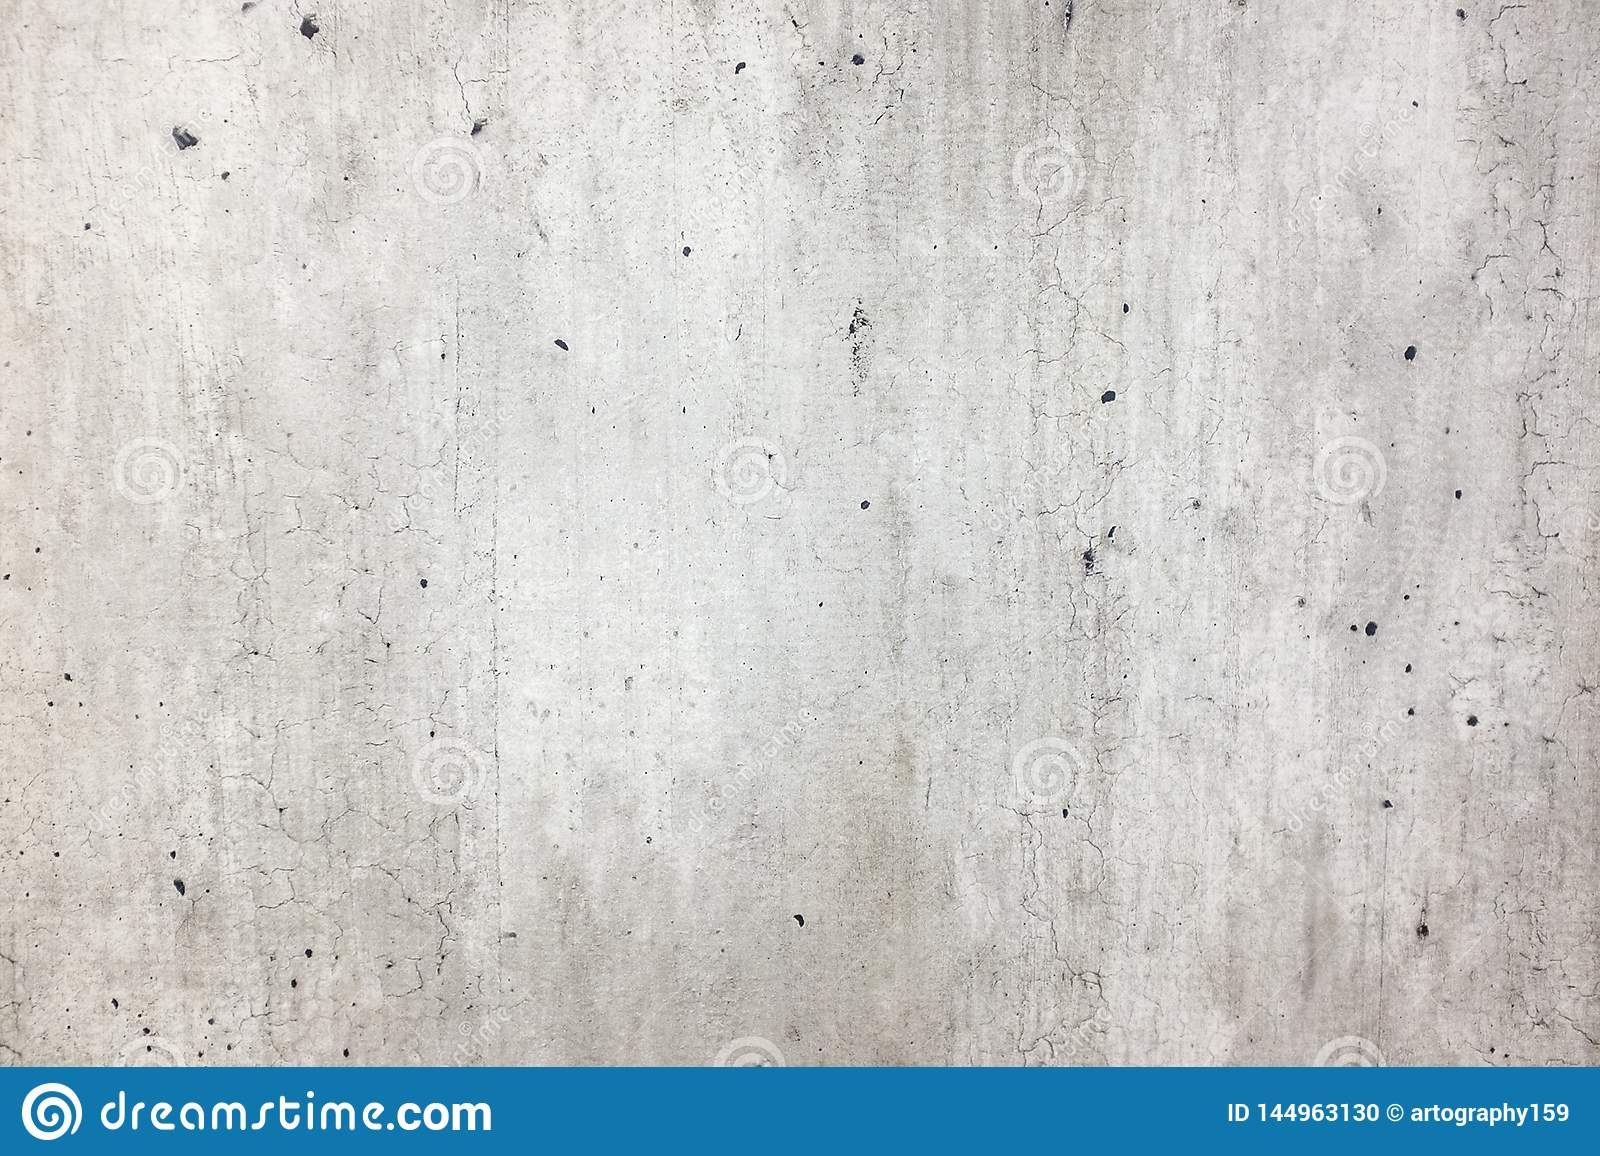 Texture of old concrete wall background